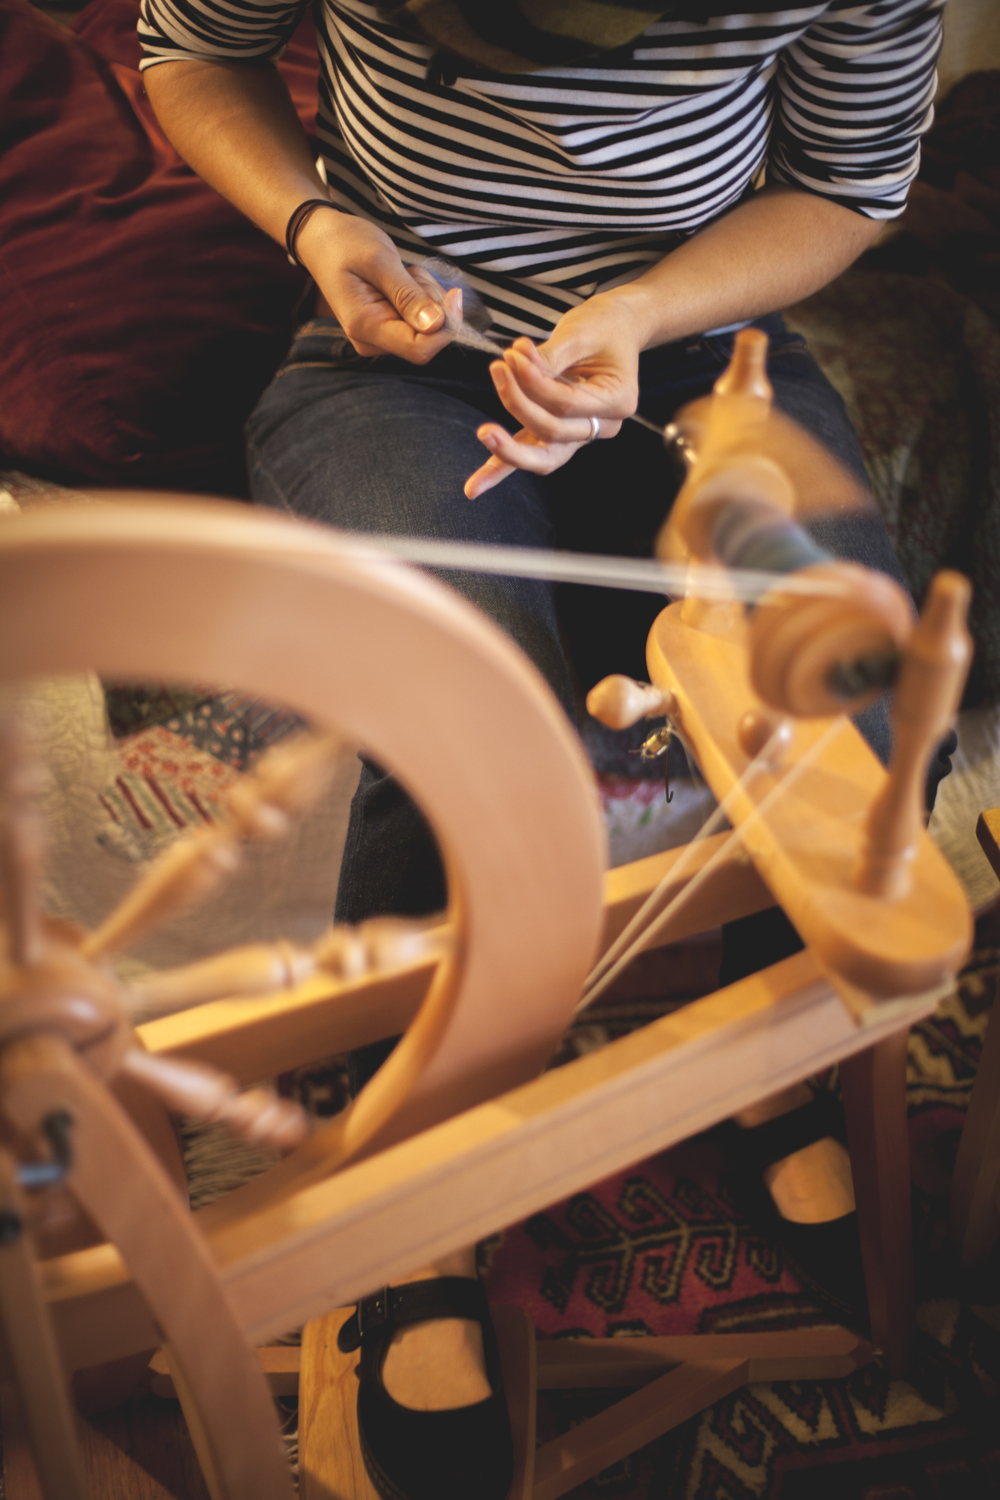 Zoe spinning yarn she hand dyed.